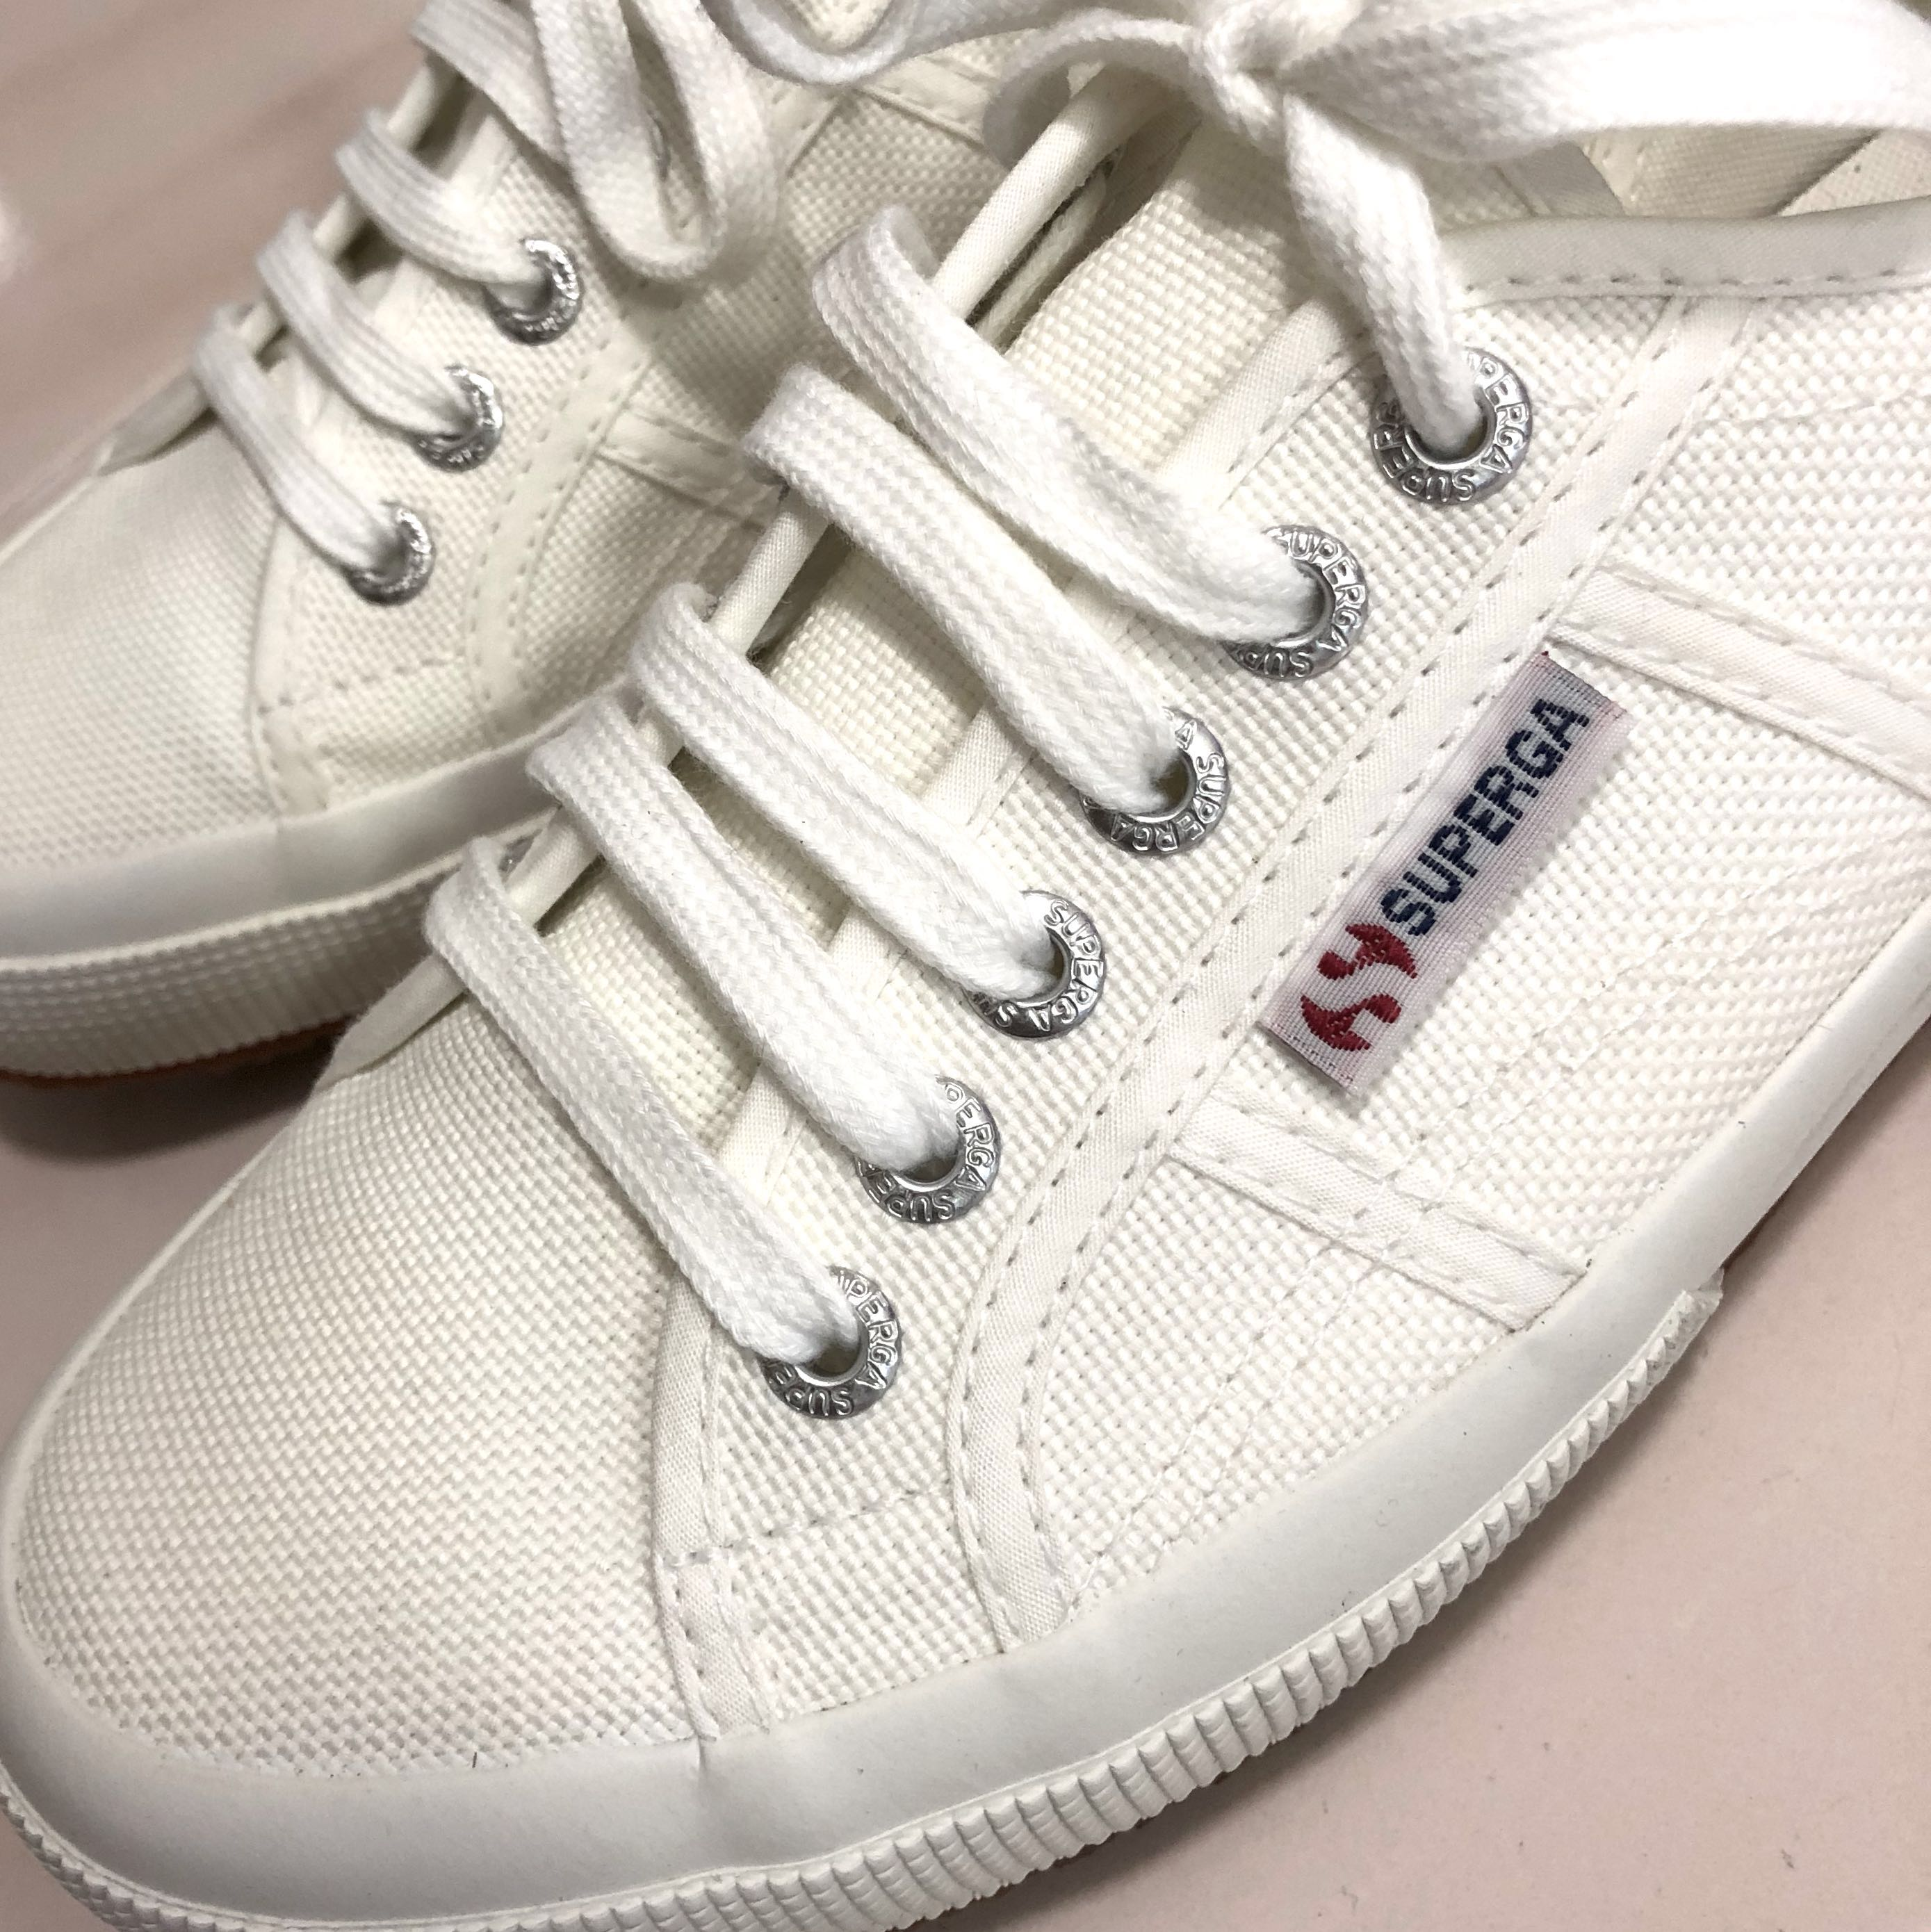 3b4d4e501 Superga Cotu Classic 2750 Sneakers White, Women's Fashion, Shoes, Sneakers  on Carousell